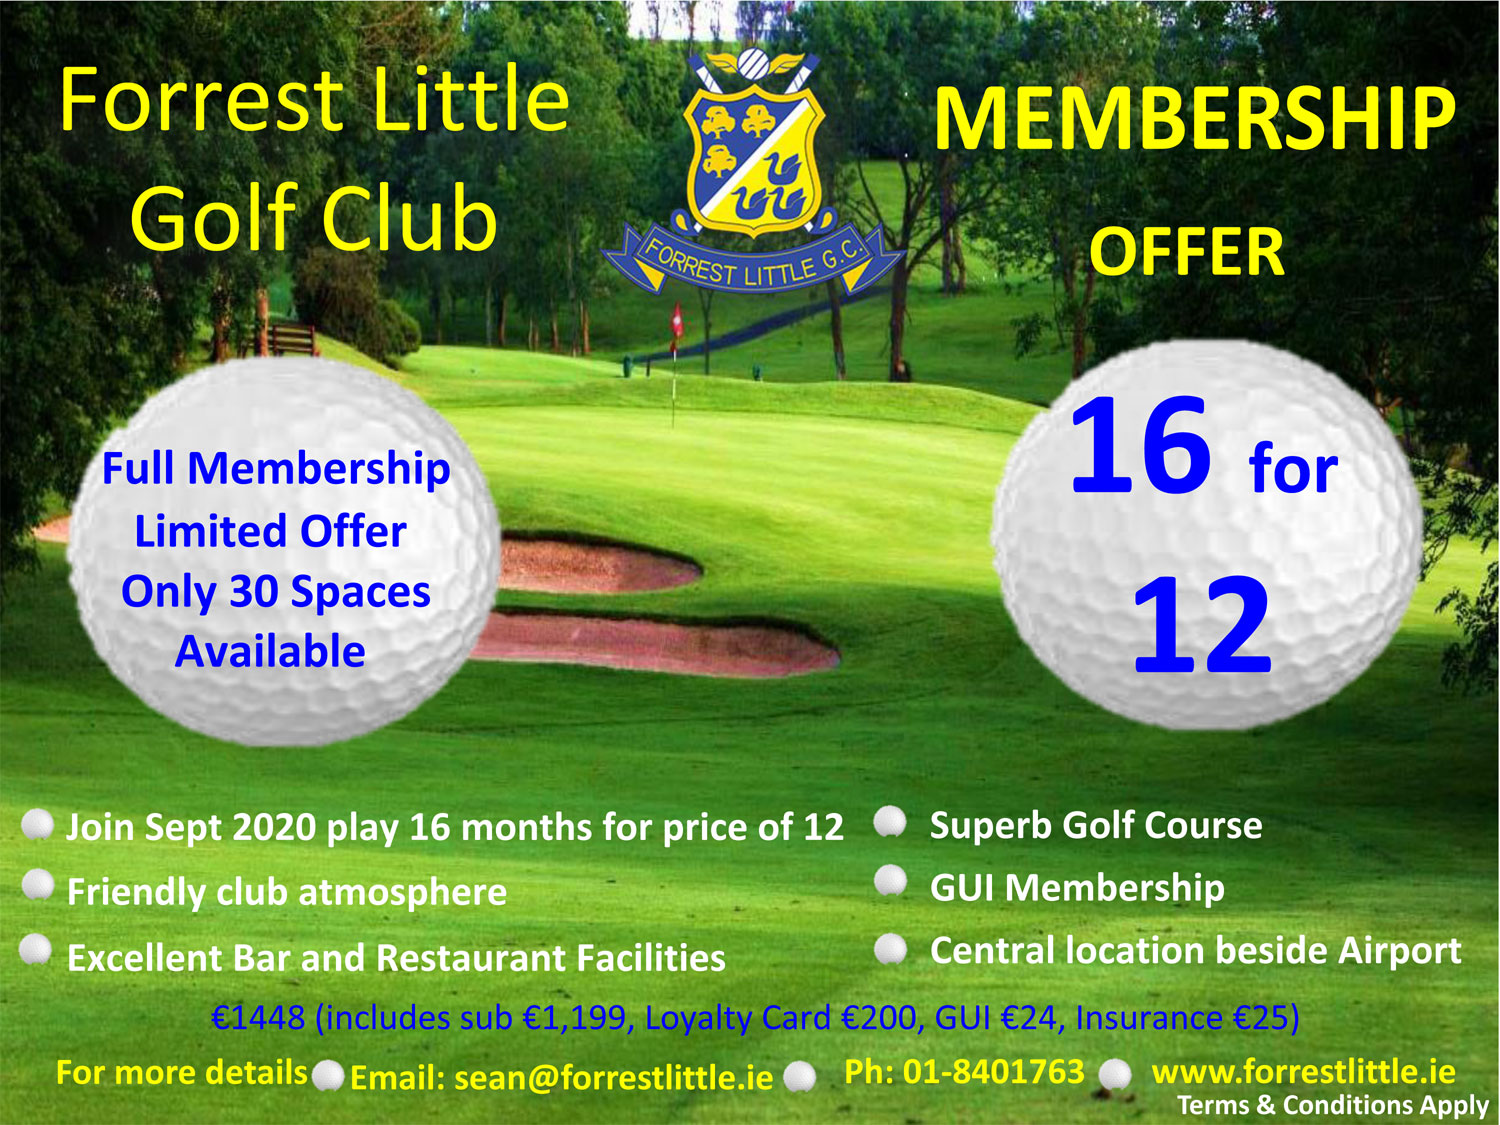 Forrest Little Membership Offer